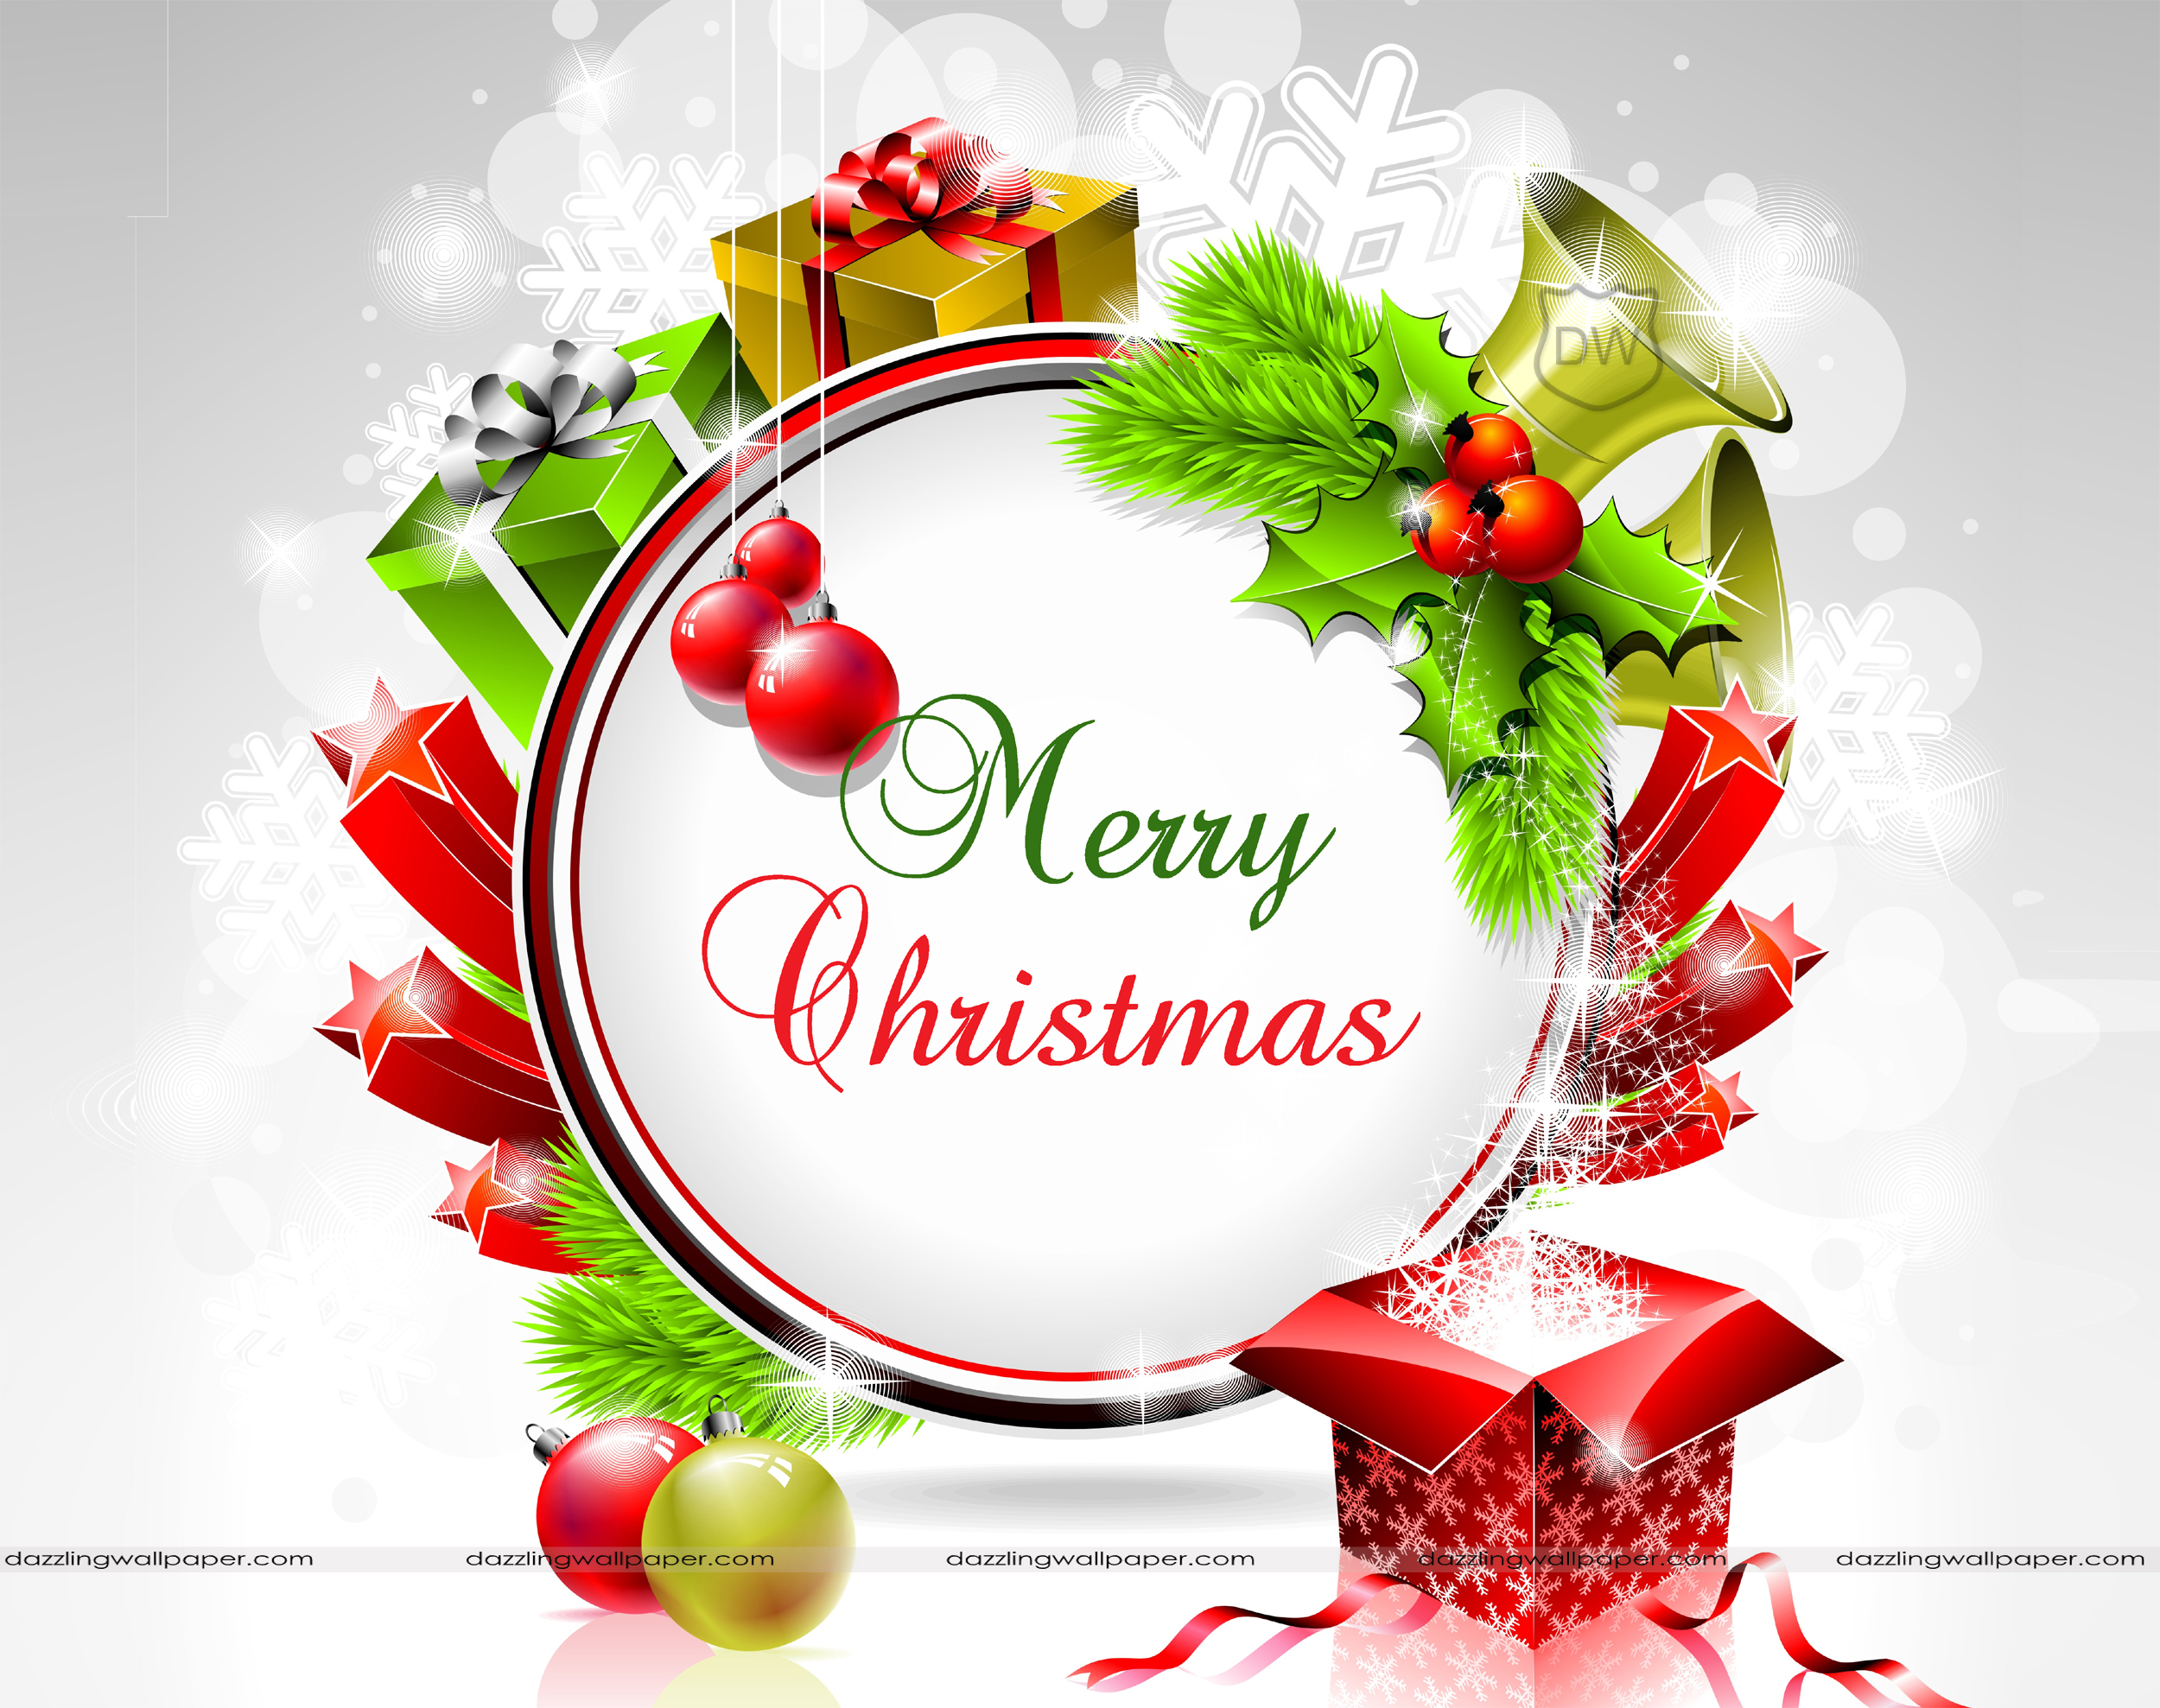 Merry Christmas To All Clipart